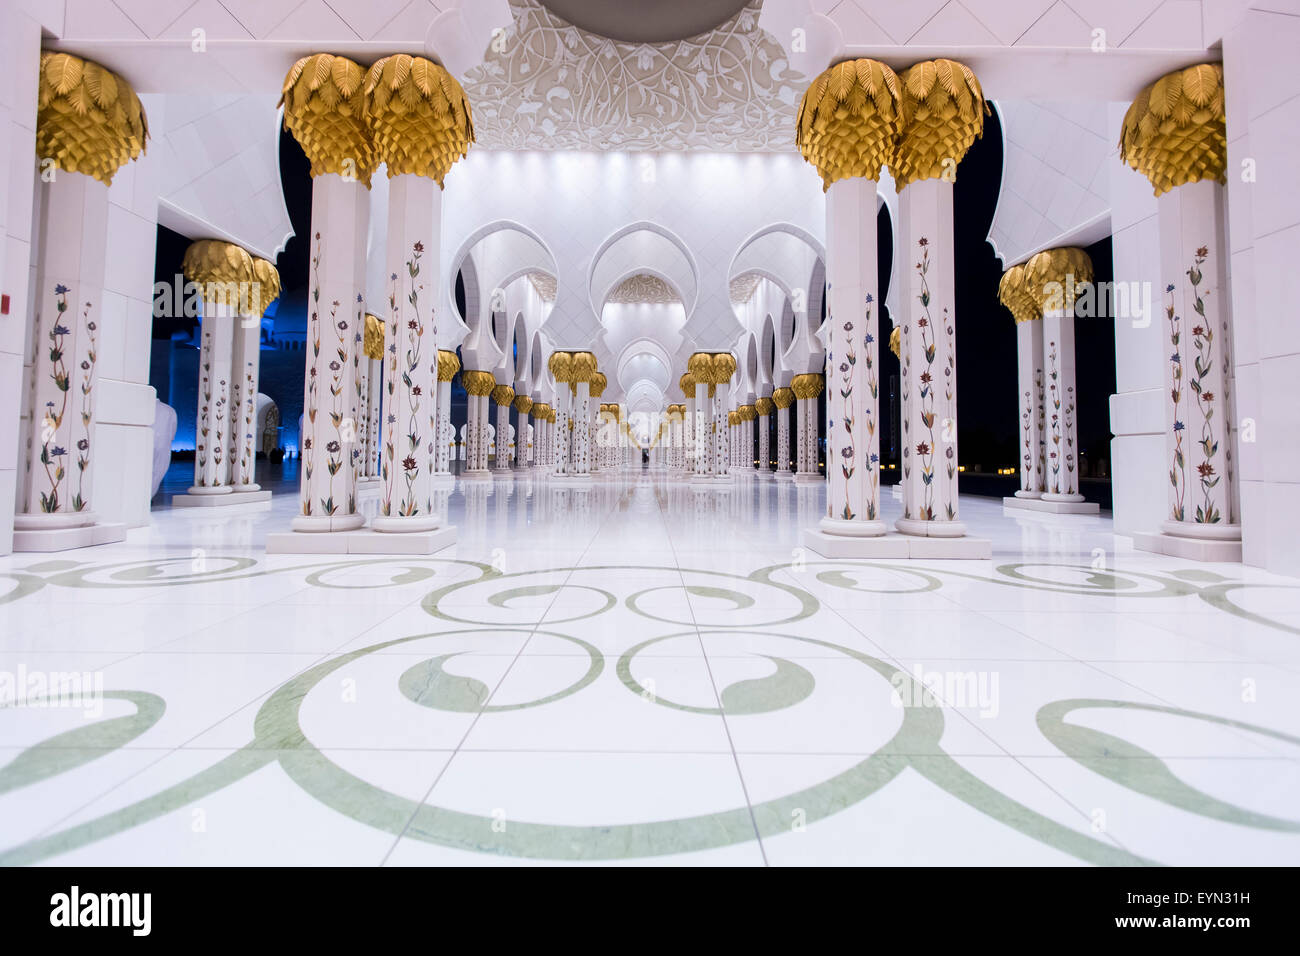 Interior of Sheikh Zayed Mosque in Abu Dhabi. - Stock Image